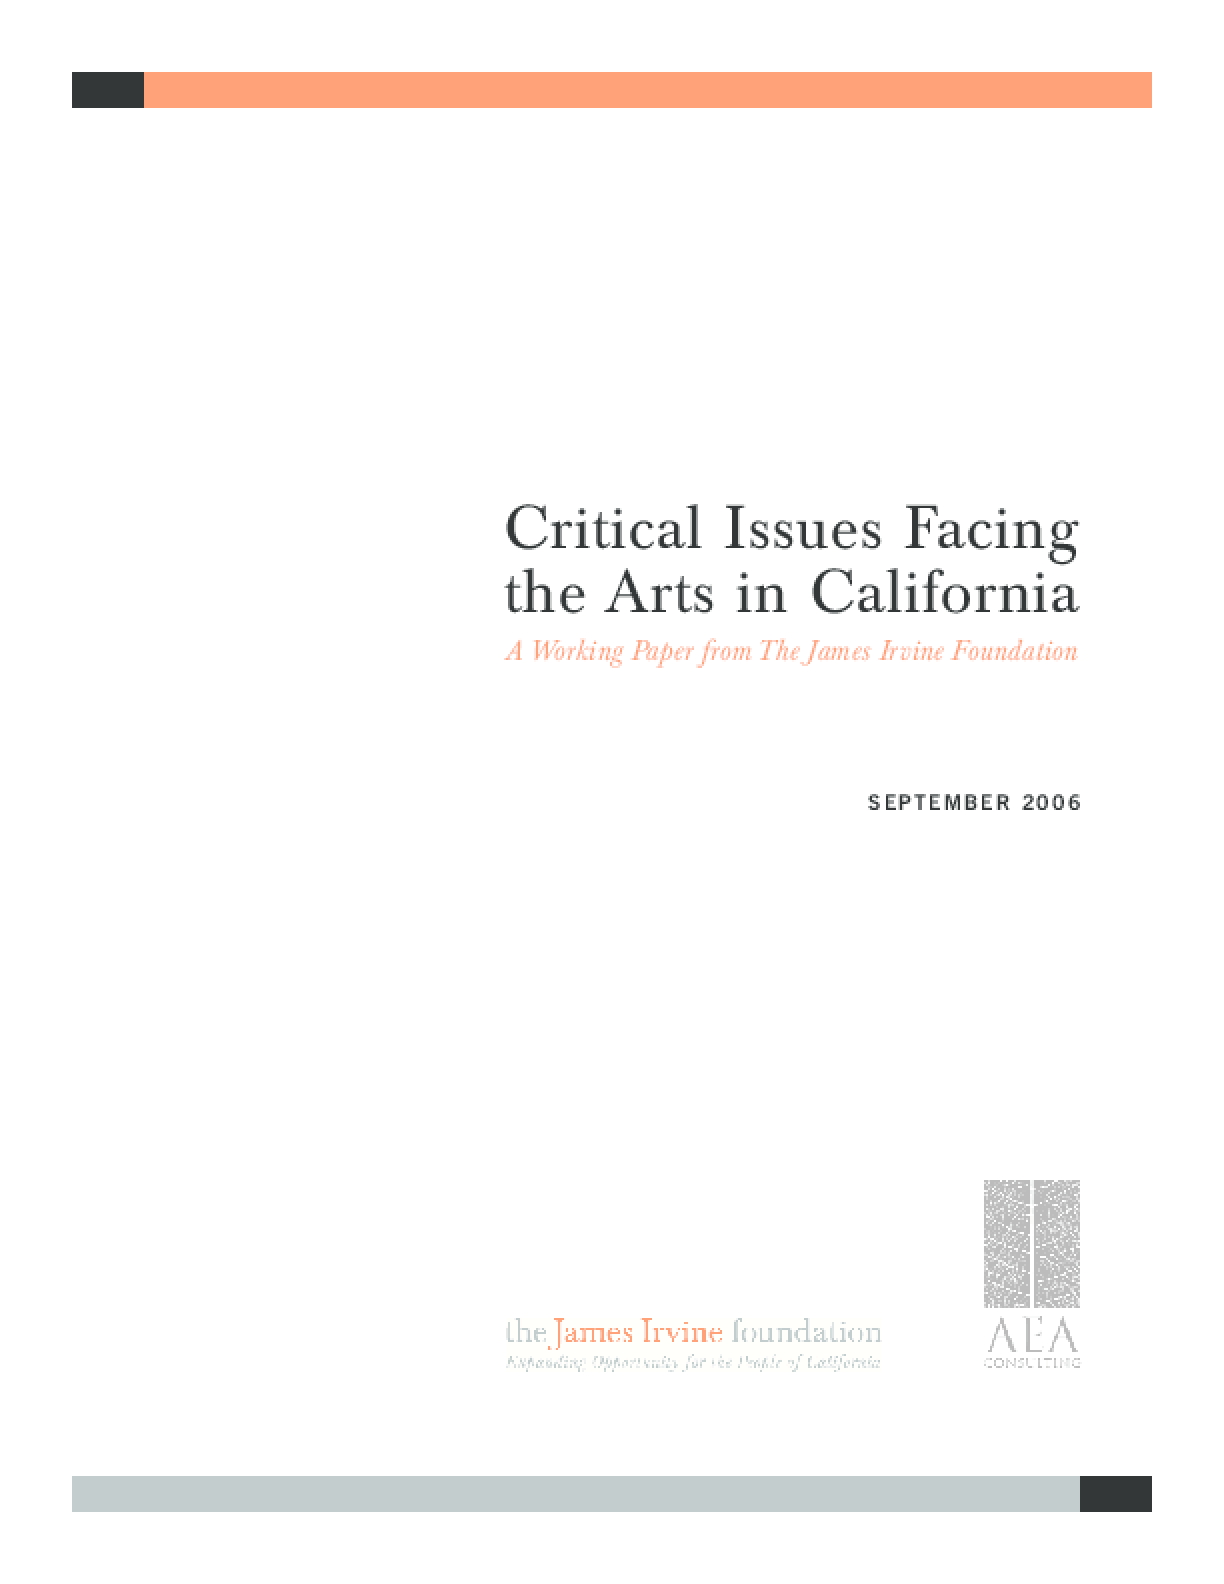 Critical Issues Facing the Arts in California